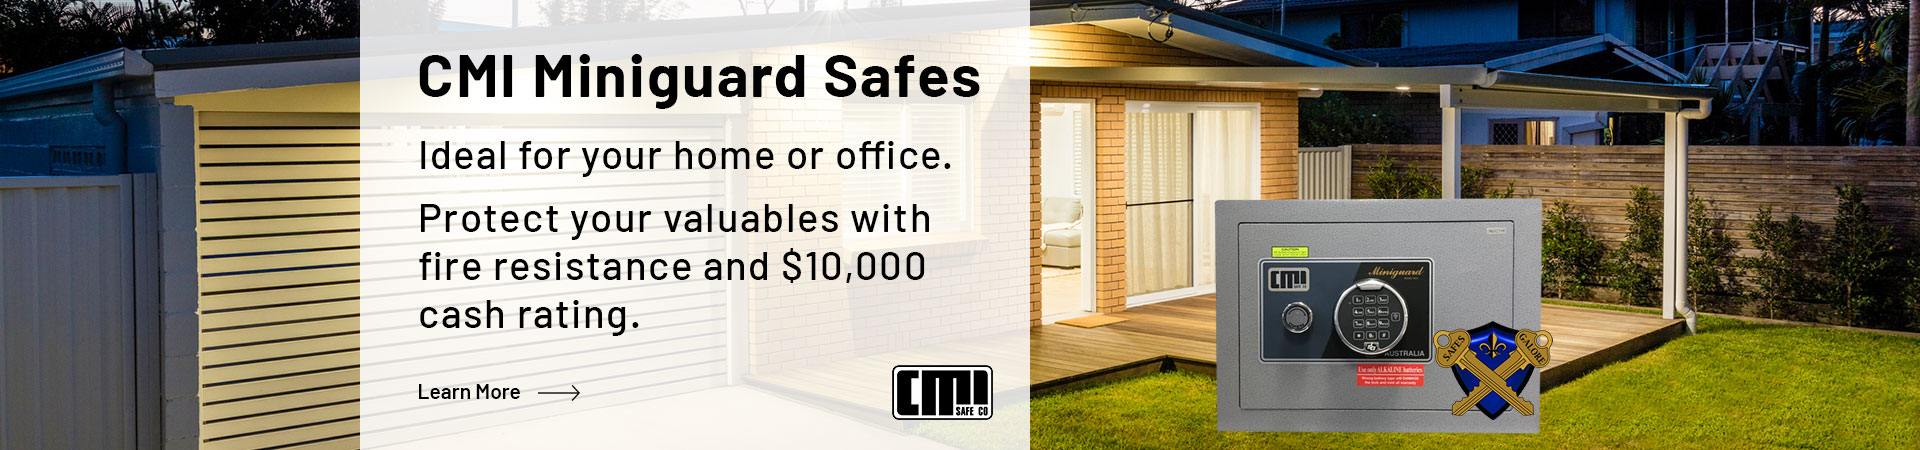 Learn more about the CMI Miniguard Safe range. Protect your valuables with fire resistance and $10,000 cash rating.